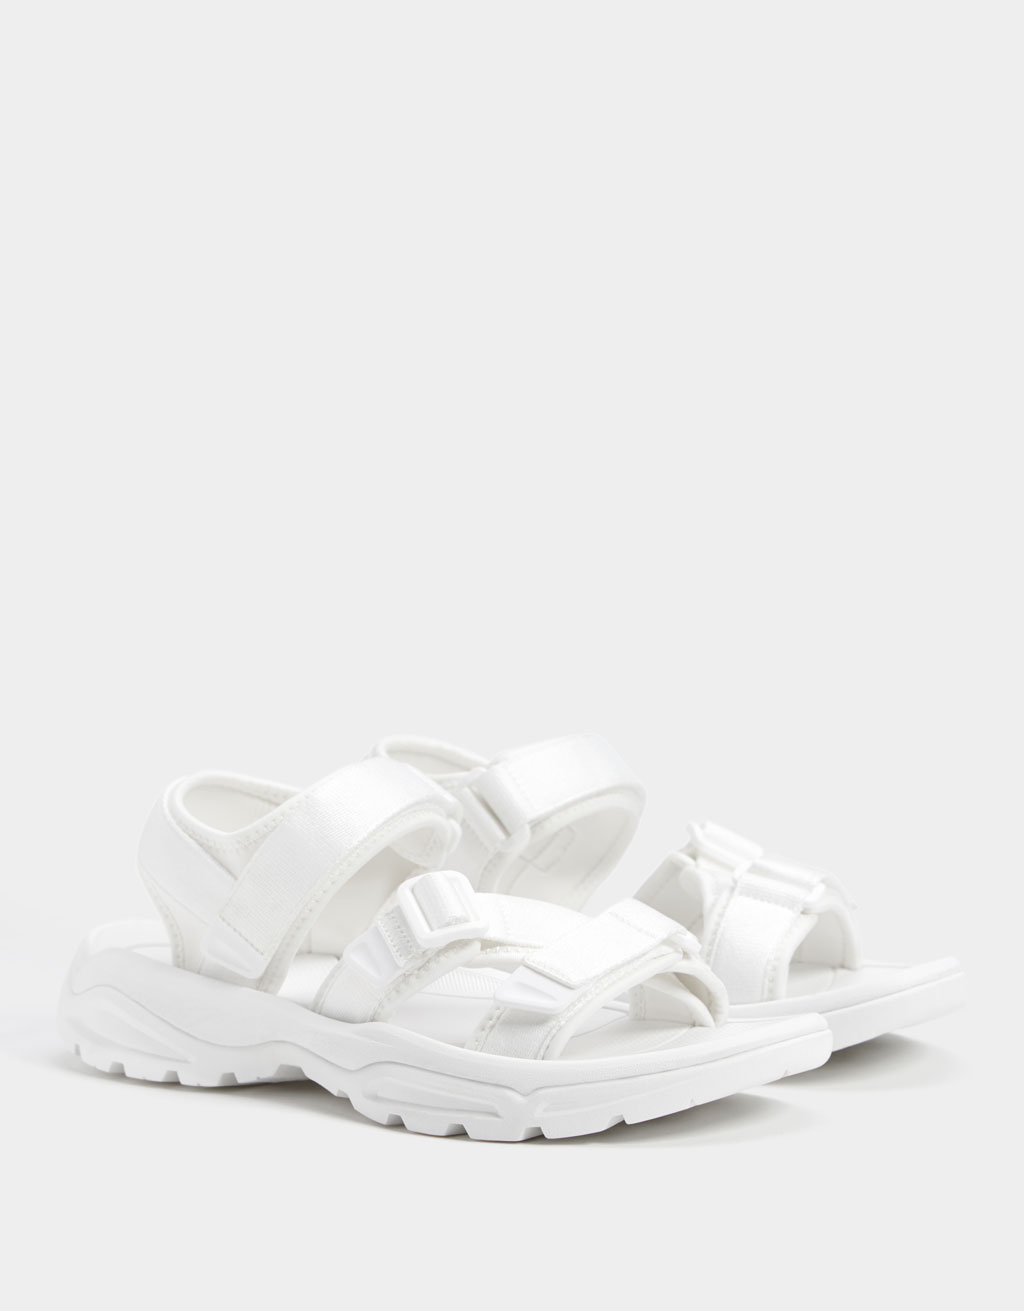 Men's monochrome technical sandals